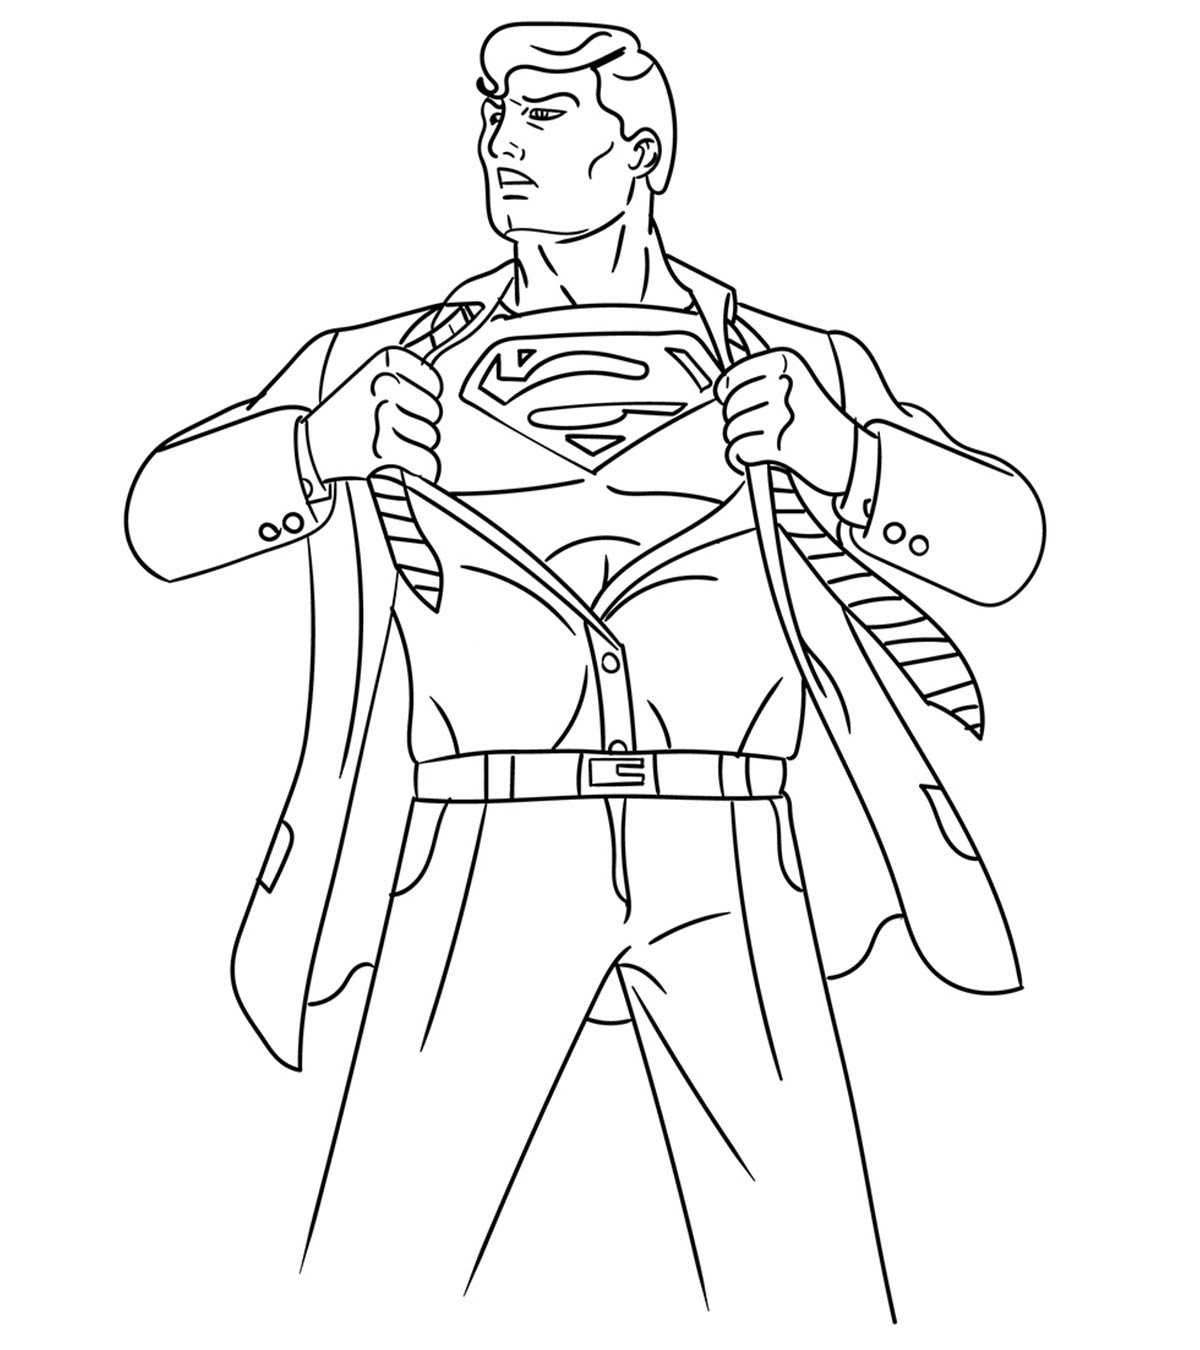 Super Heros Coloring Pages - MomJunction